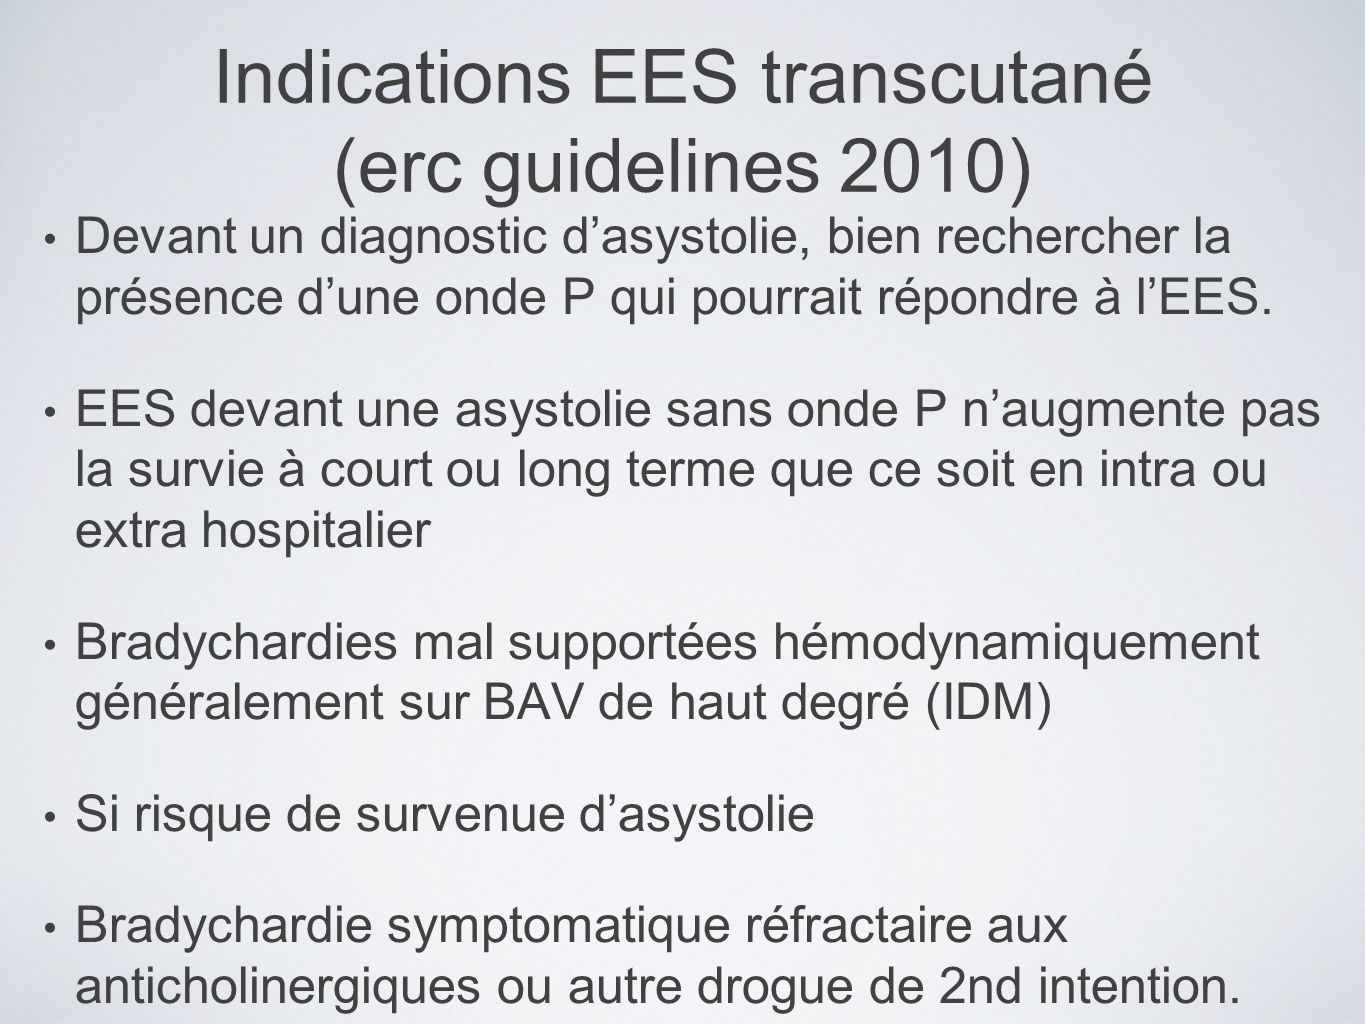 Indications EES transcutané (erc guidelines 2010)